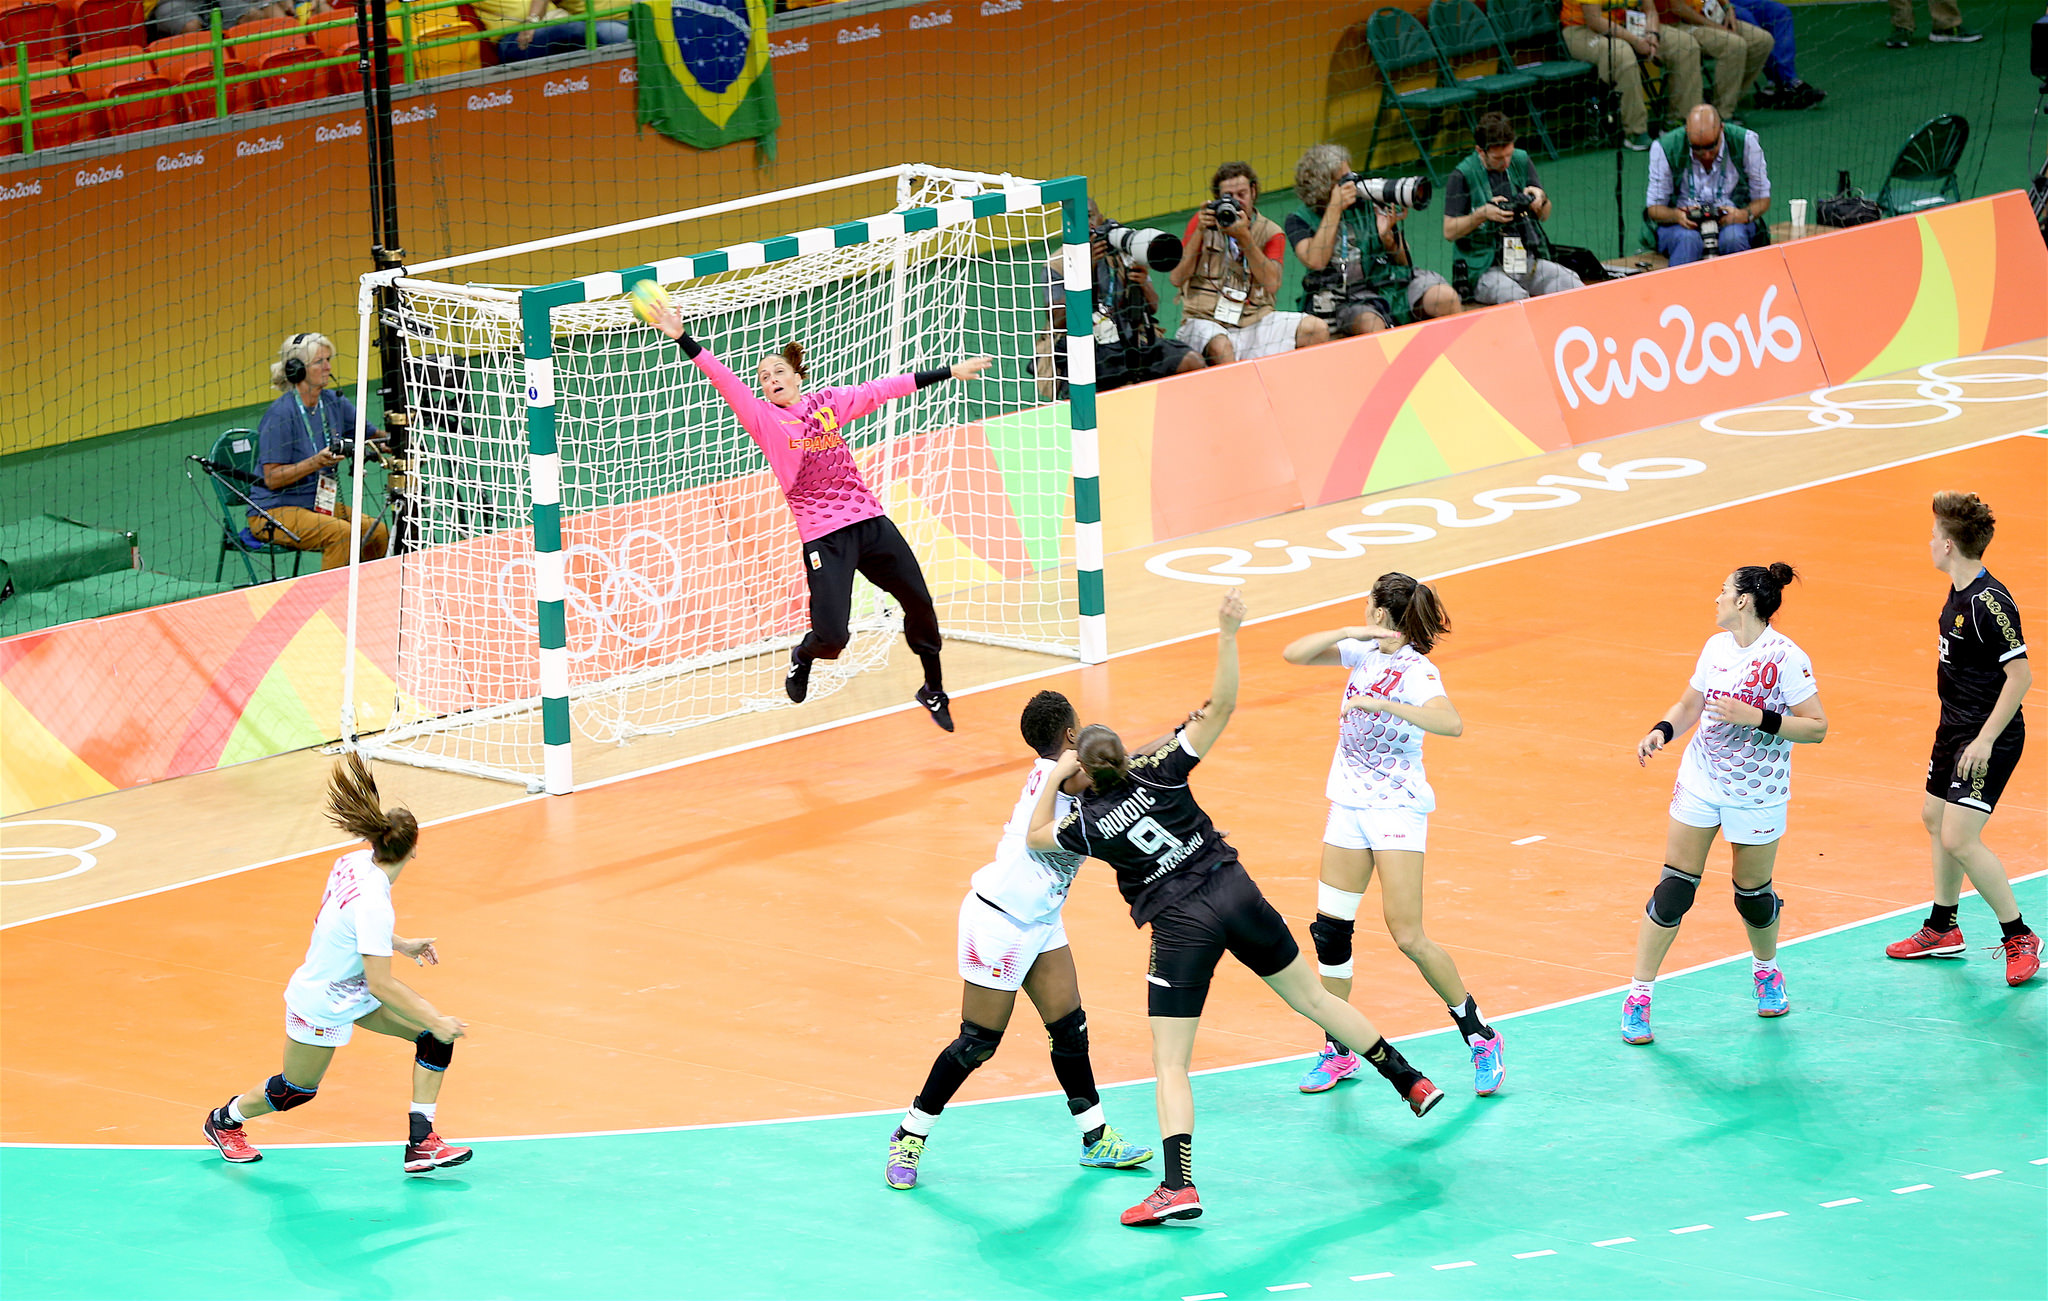 What Is Handball And How Can The United States Get Better At It?